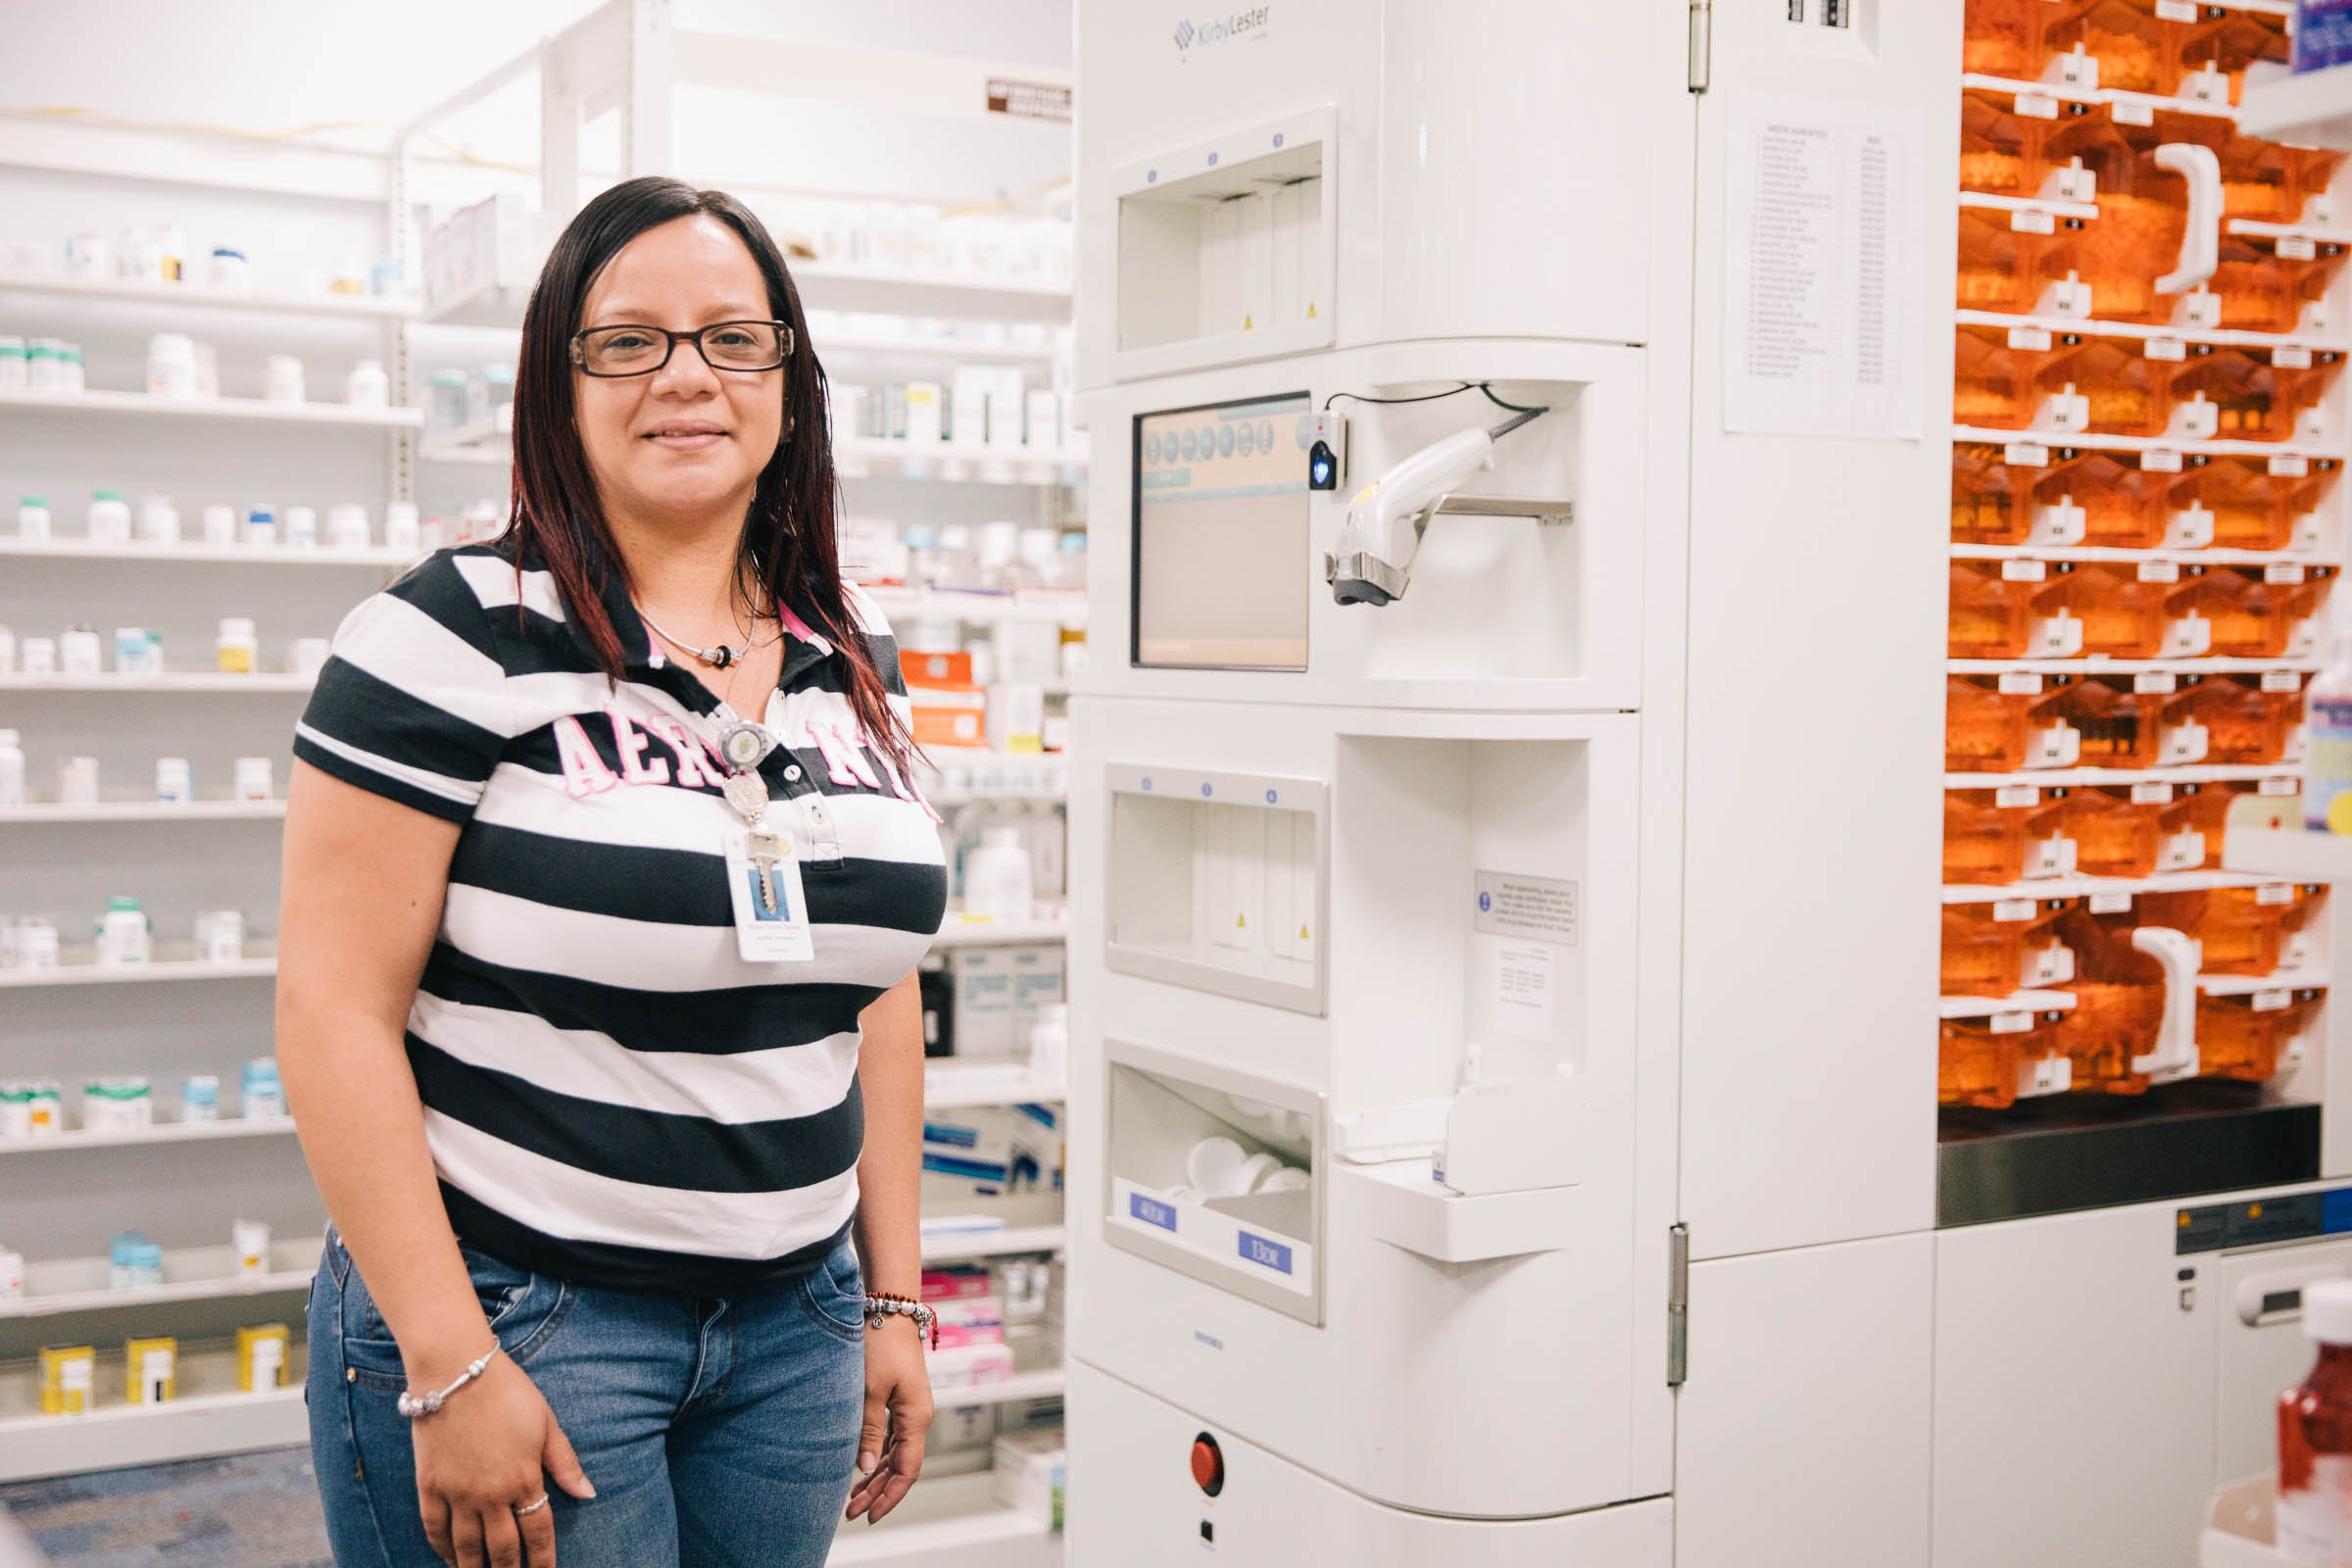 Morovis Community Health Center Nydia Torres in the center's pharmacy on Dec. 17, 2017. The center stopped treating patients before, during or after Hurricane Maria made landfall, even when the center's glass doors were destroyed by 150 mile-per-hour winds. Clinical staff were able to barricade the doors with plywood and the clinic kept operating. (Photo by Donnie Hedden for Direct Relief)